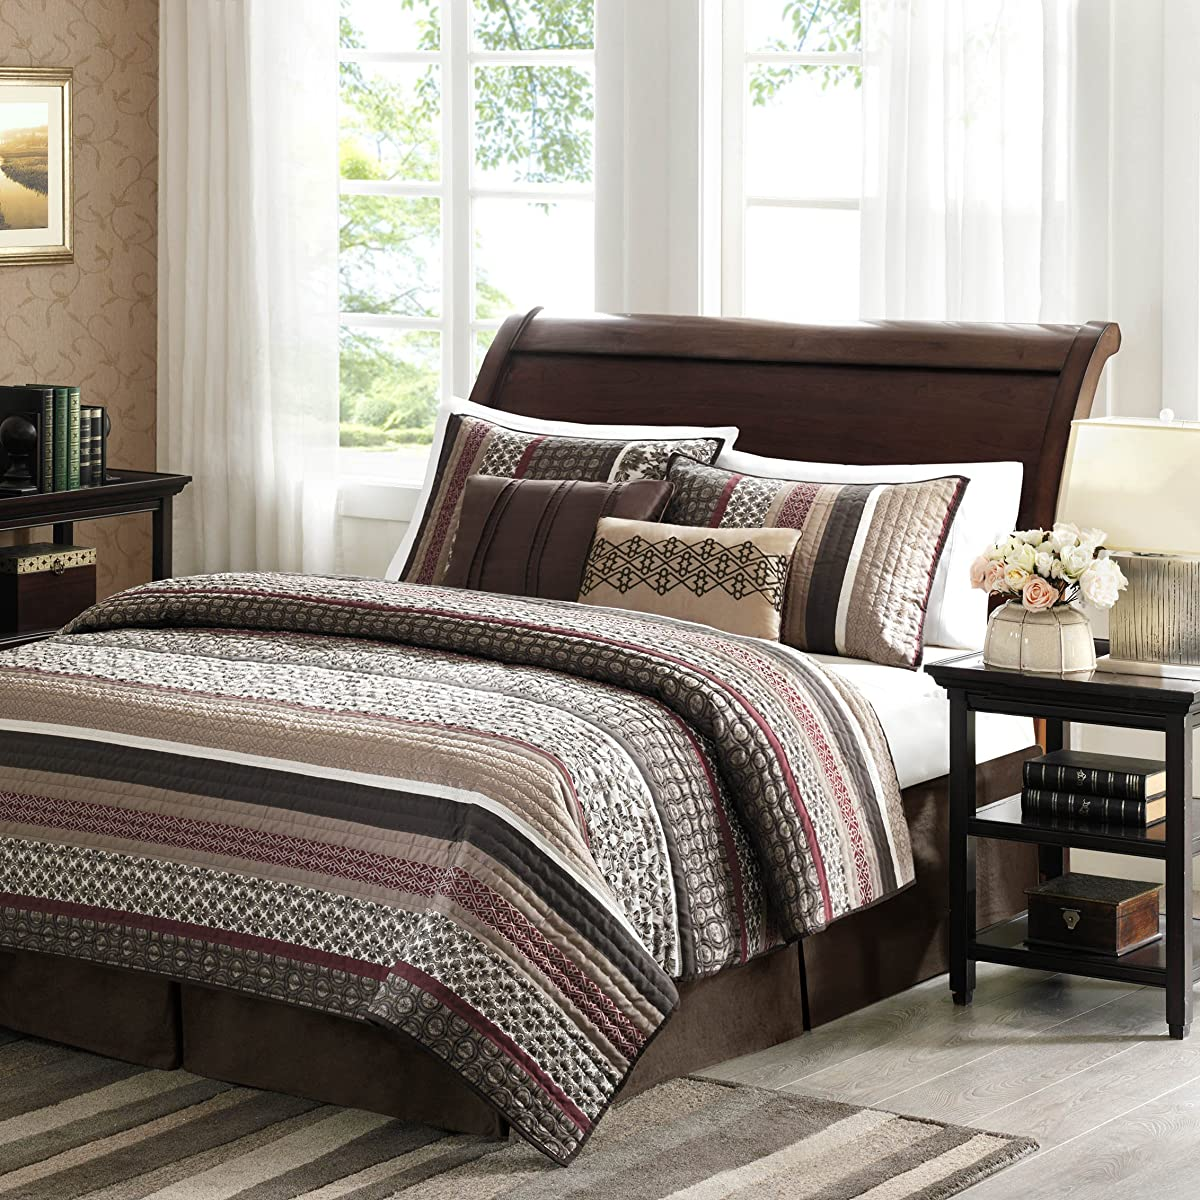 Madison Park Princeton 5 Piece Quilted Coverlet Set, Full/Queen, Red